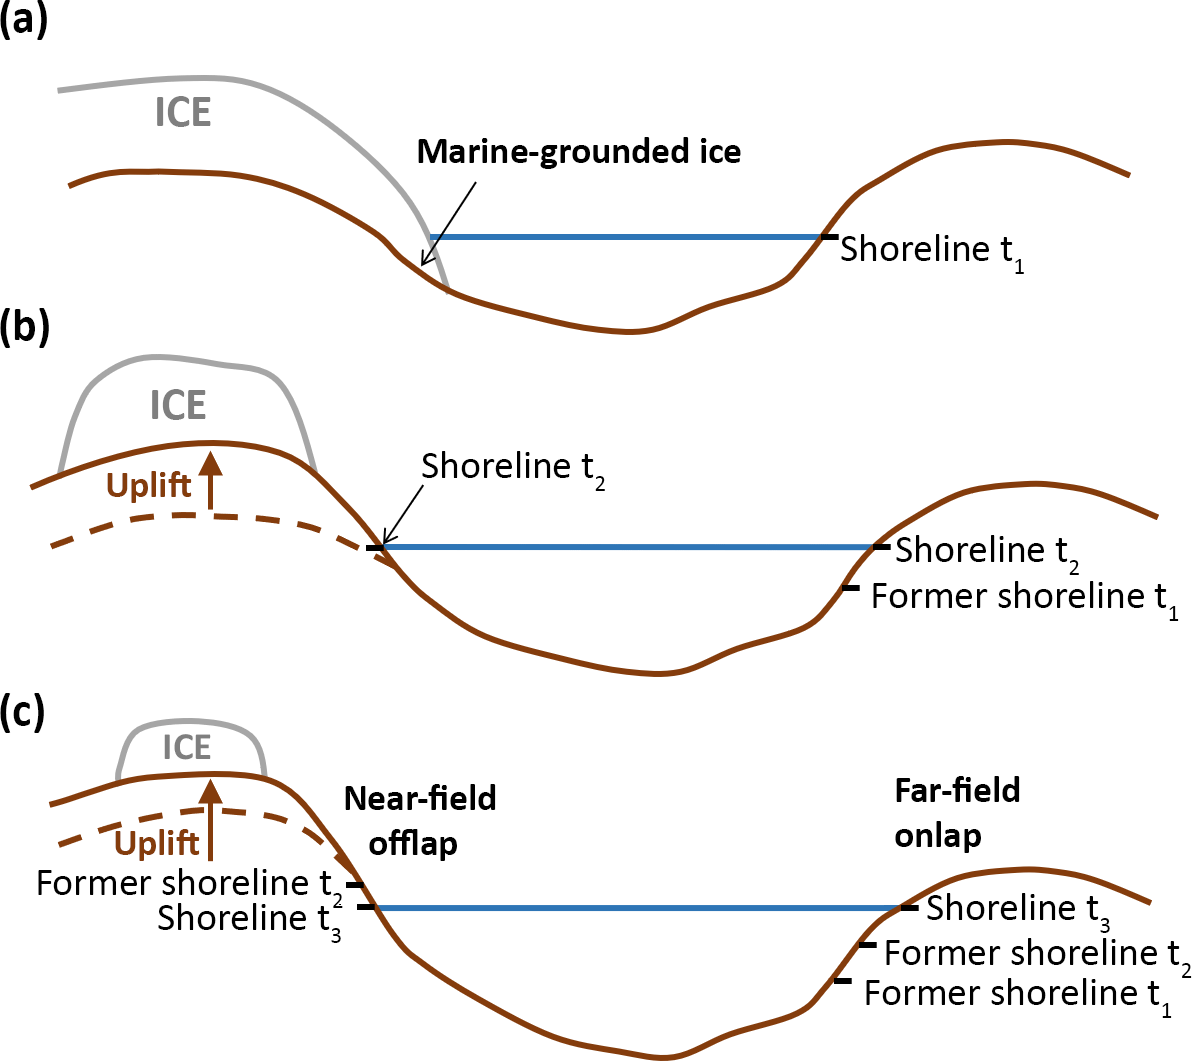 ESurf - Glacial isostatic adjustment modelling: historical